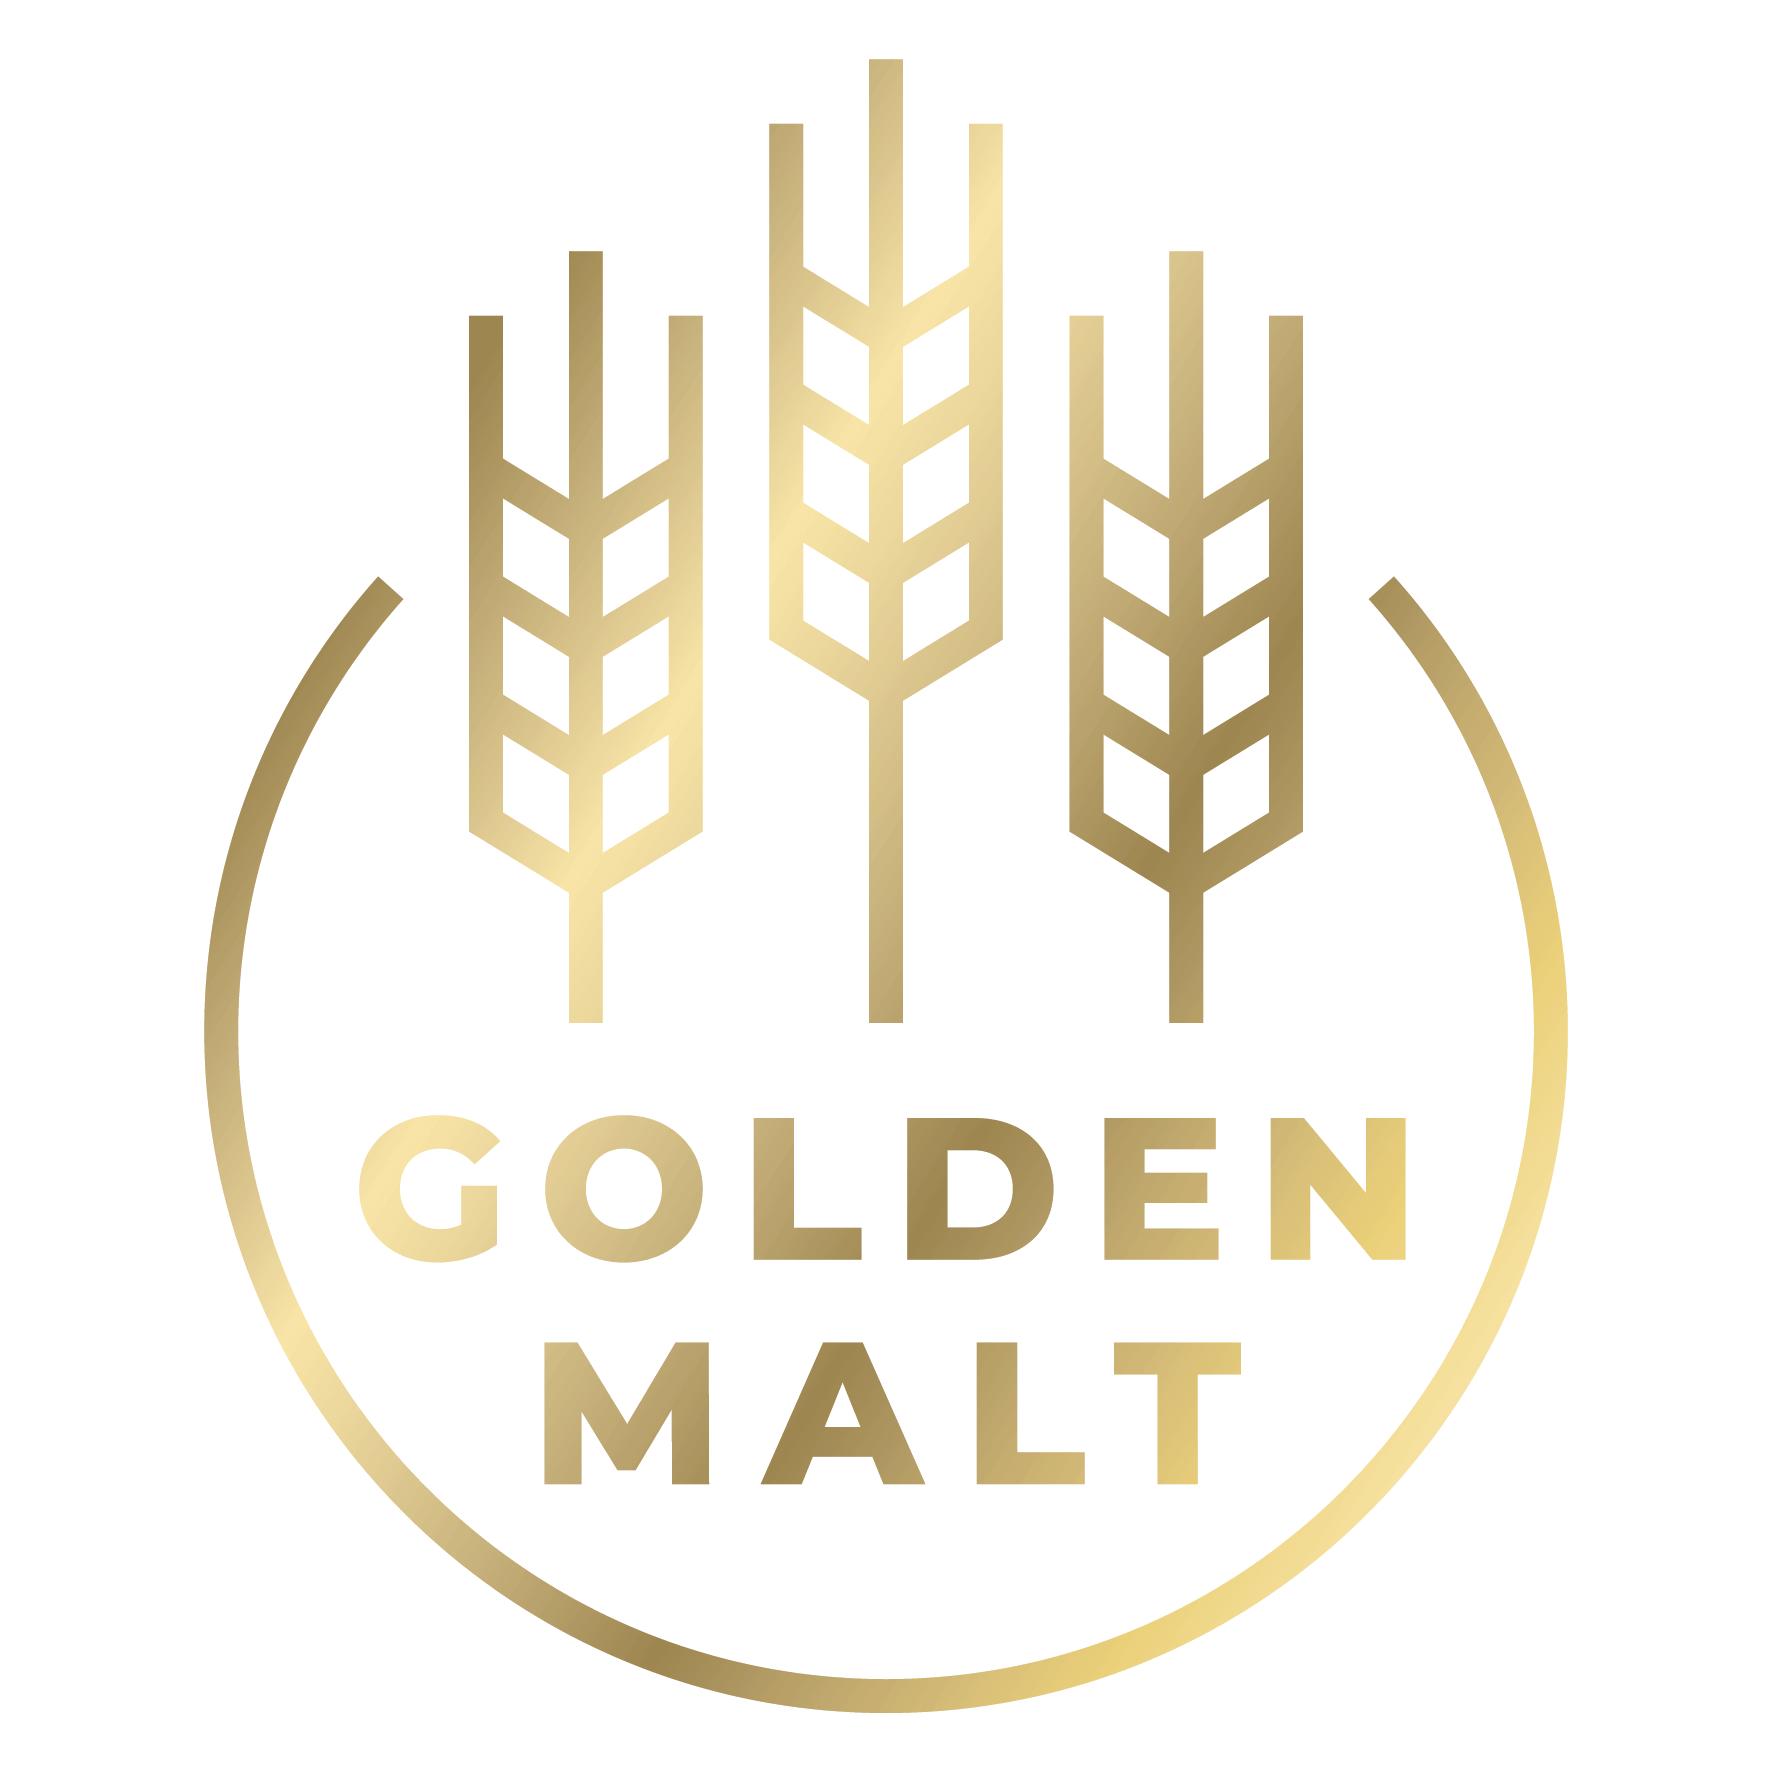 Golden Malt logo.